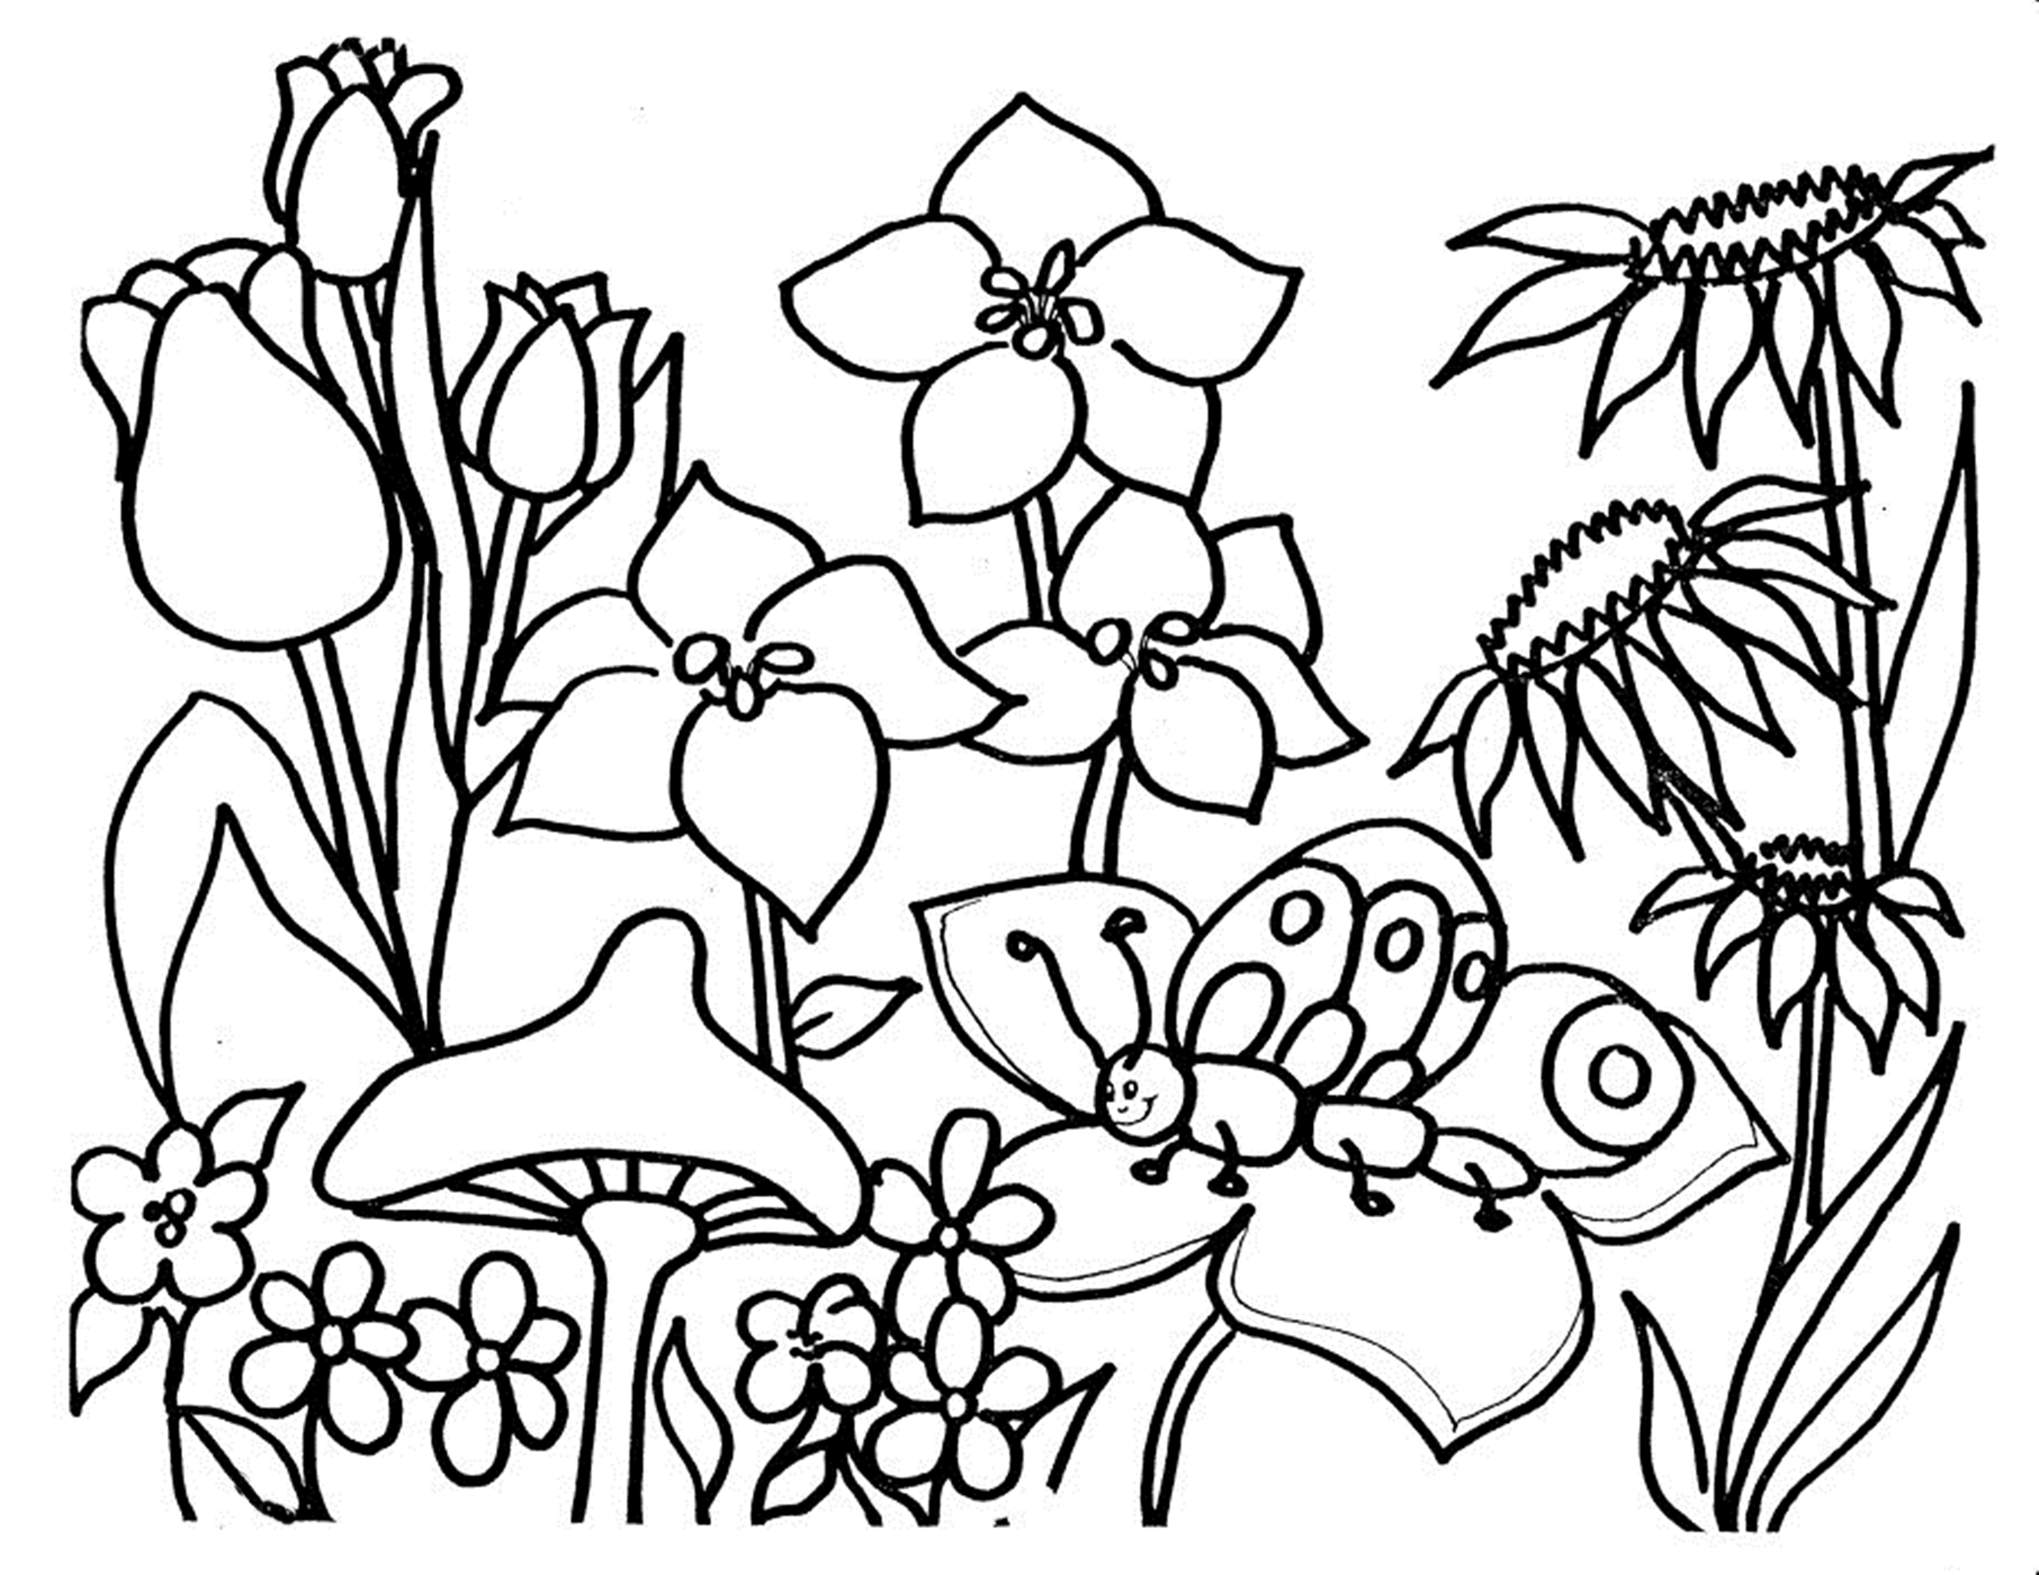 coloring pages flowers printable free printable flower coloring pages for kids best flowers coloring pages printable